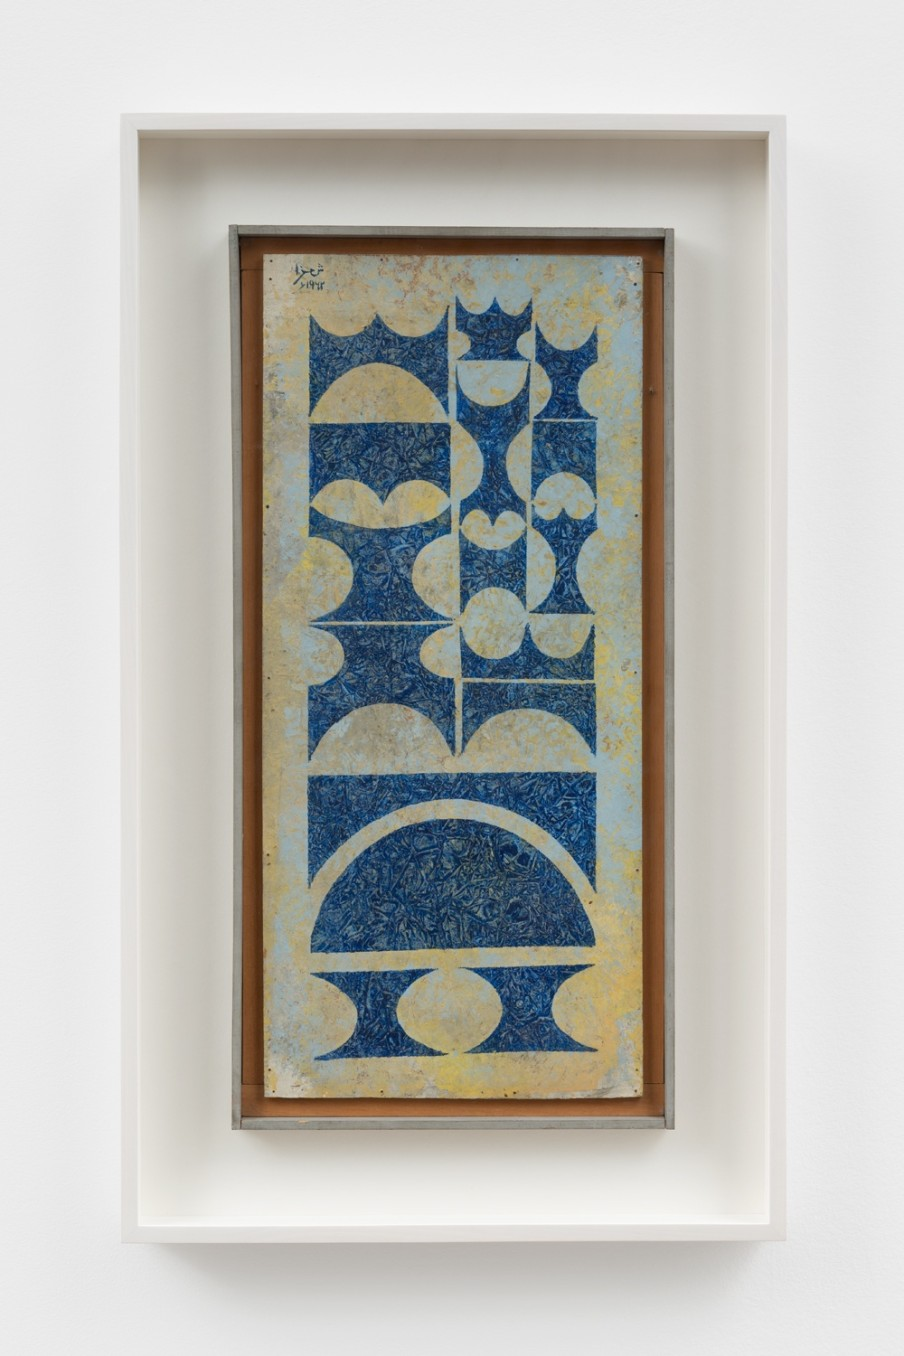 Anwar Jalal Shemza, Blue Composition, 1962, Oil On Hardboard, 59 X 29 cm, Framed: 74 X 43.6 cm